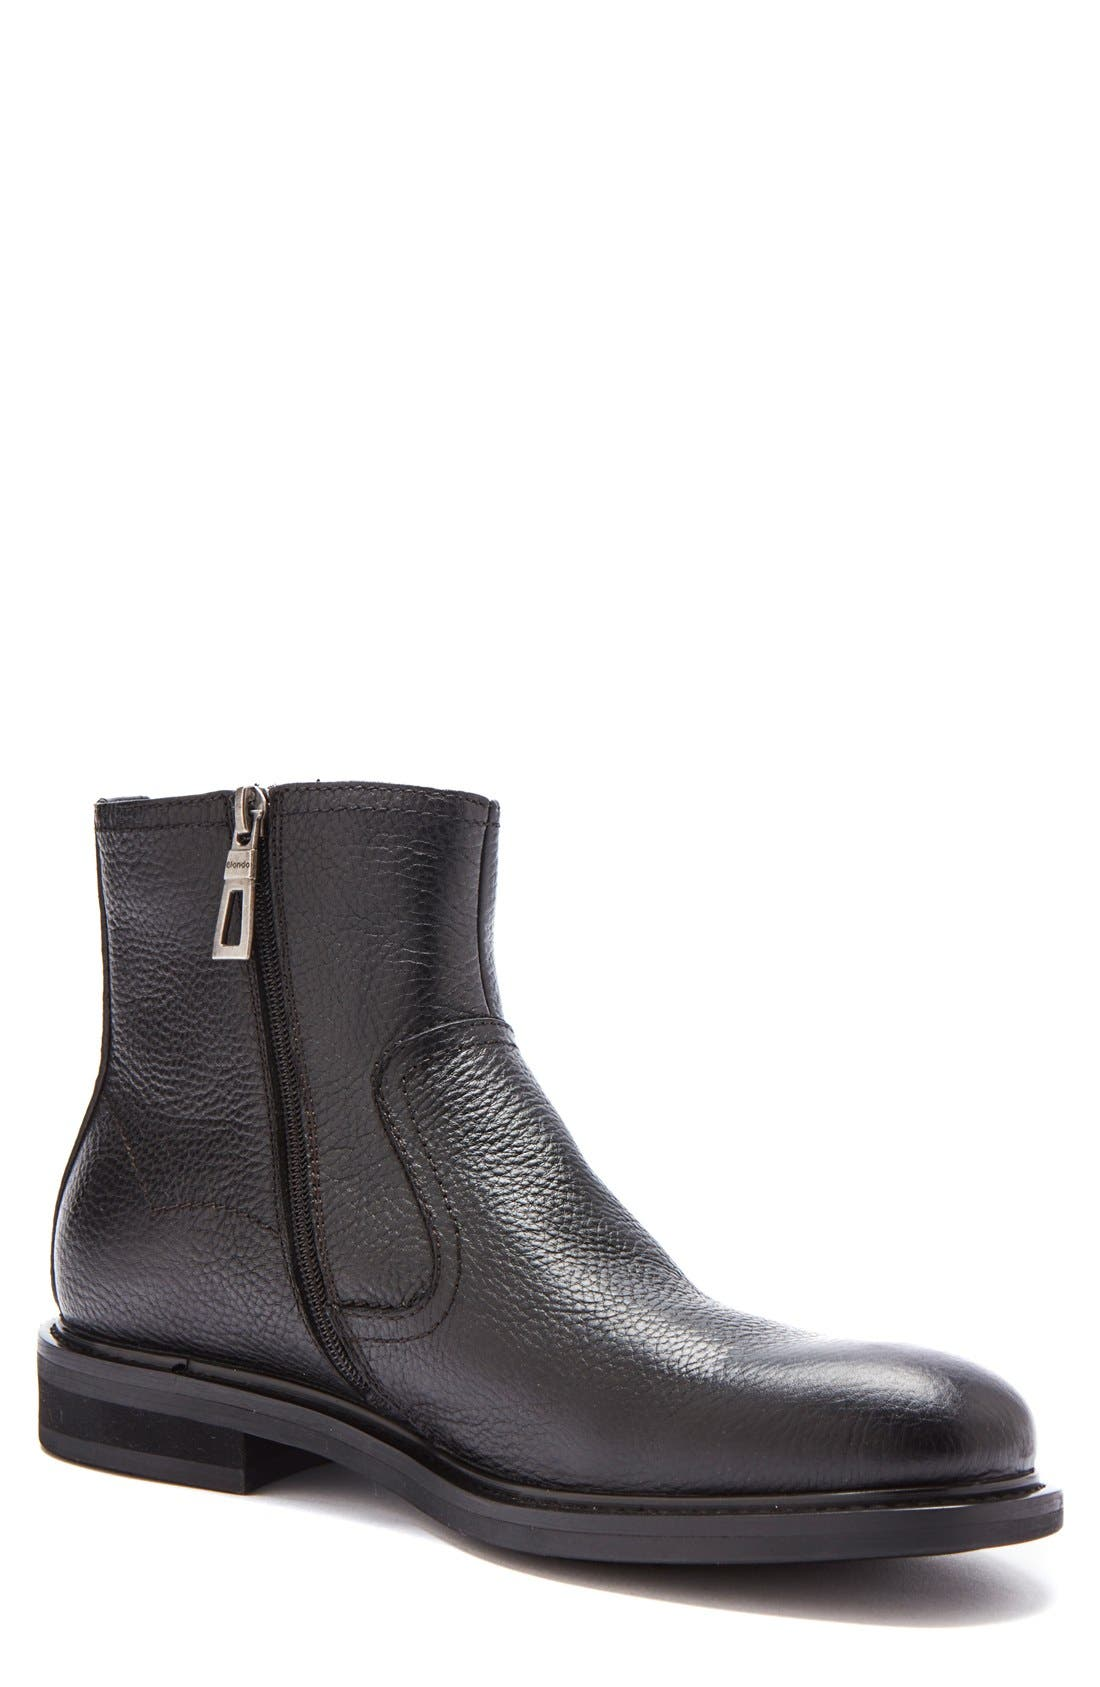 'Fried' Waterproof Zip Boot,                             Main thumbnail 1, color,                             Black Leather